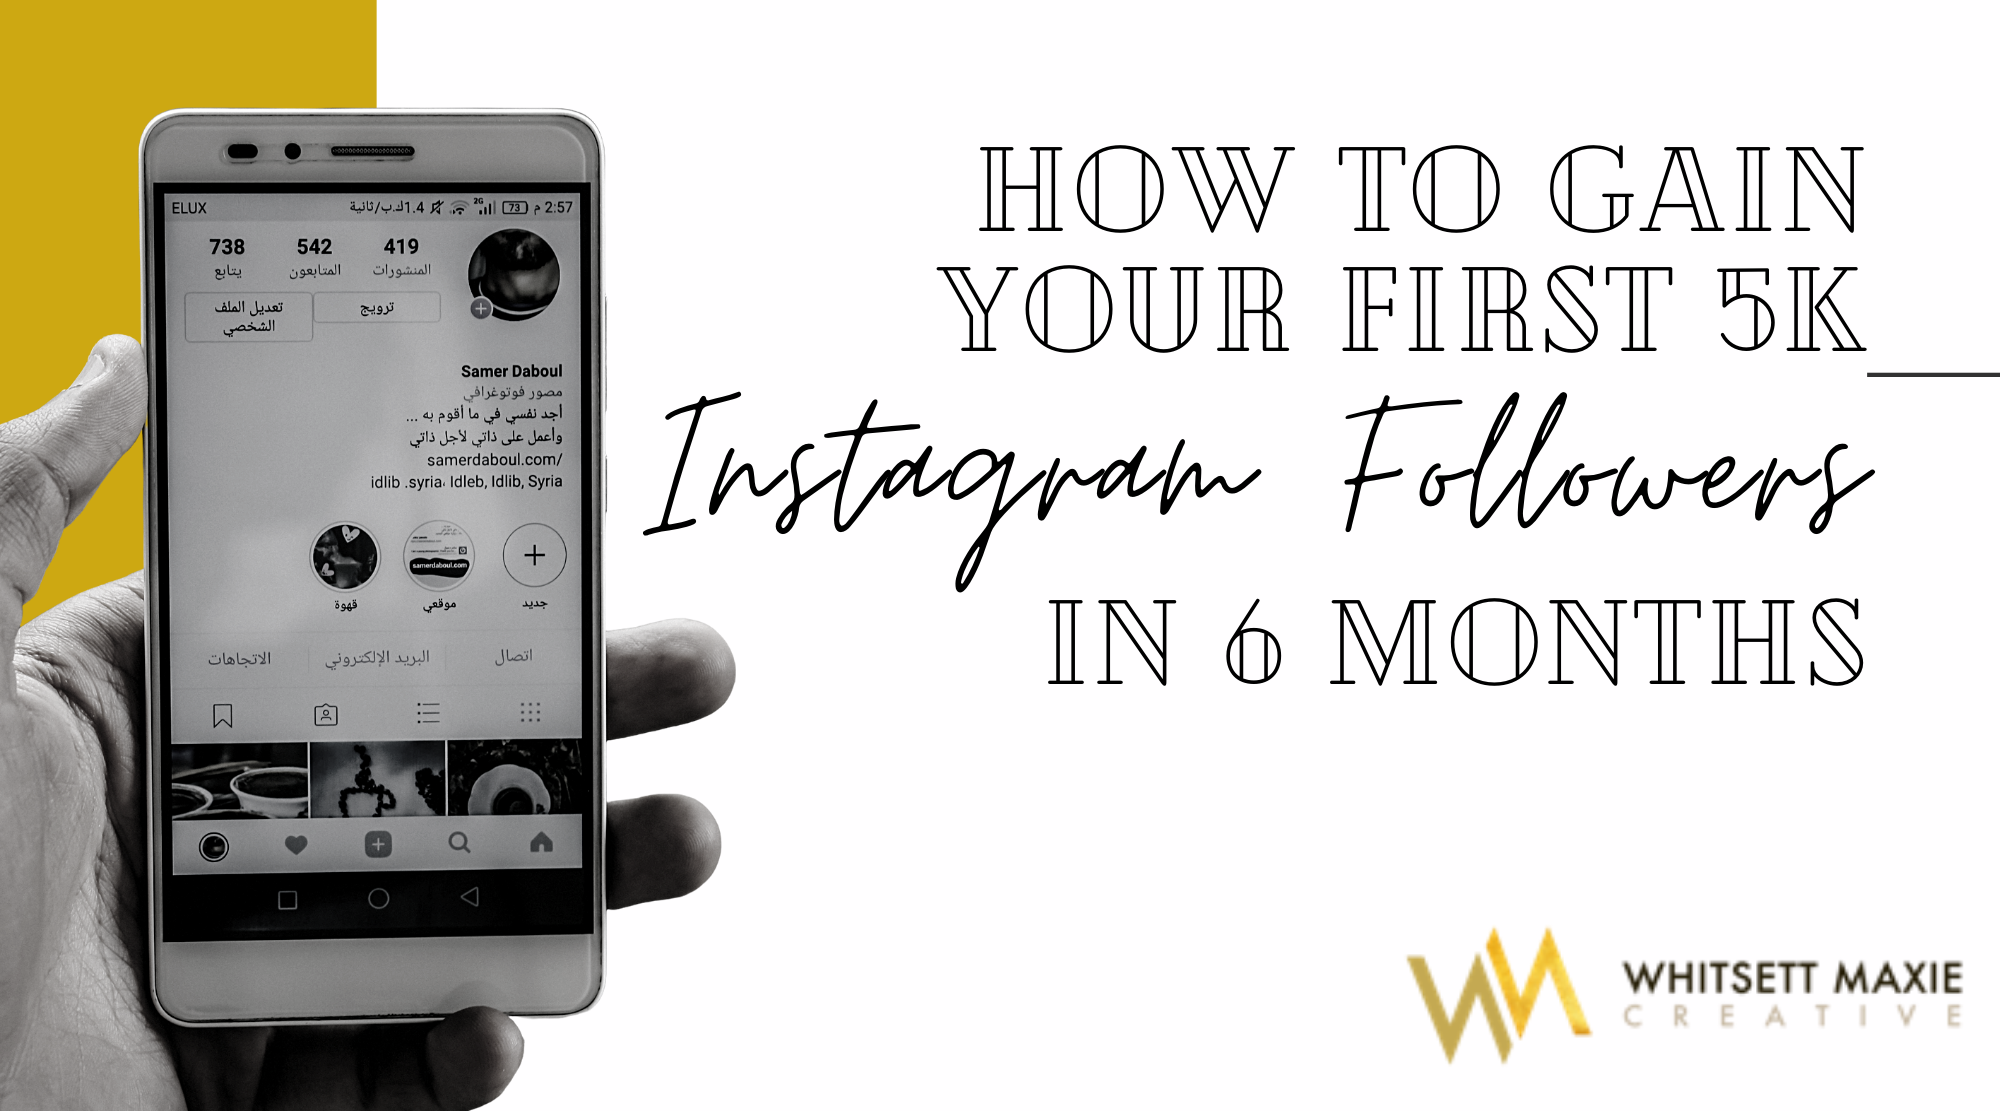 How To Gain Your First 5k Instagram Followers In 6 Months